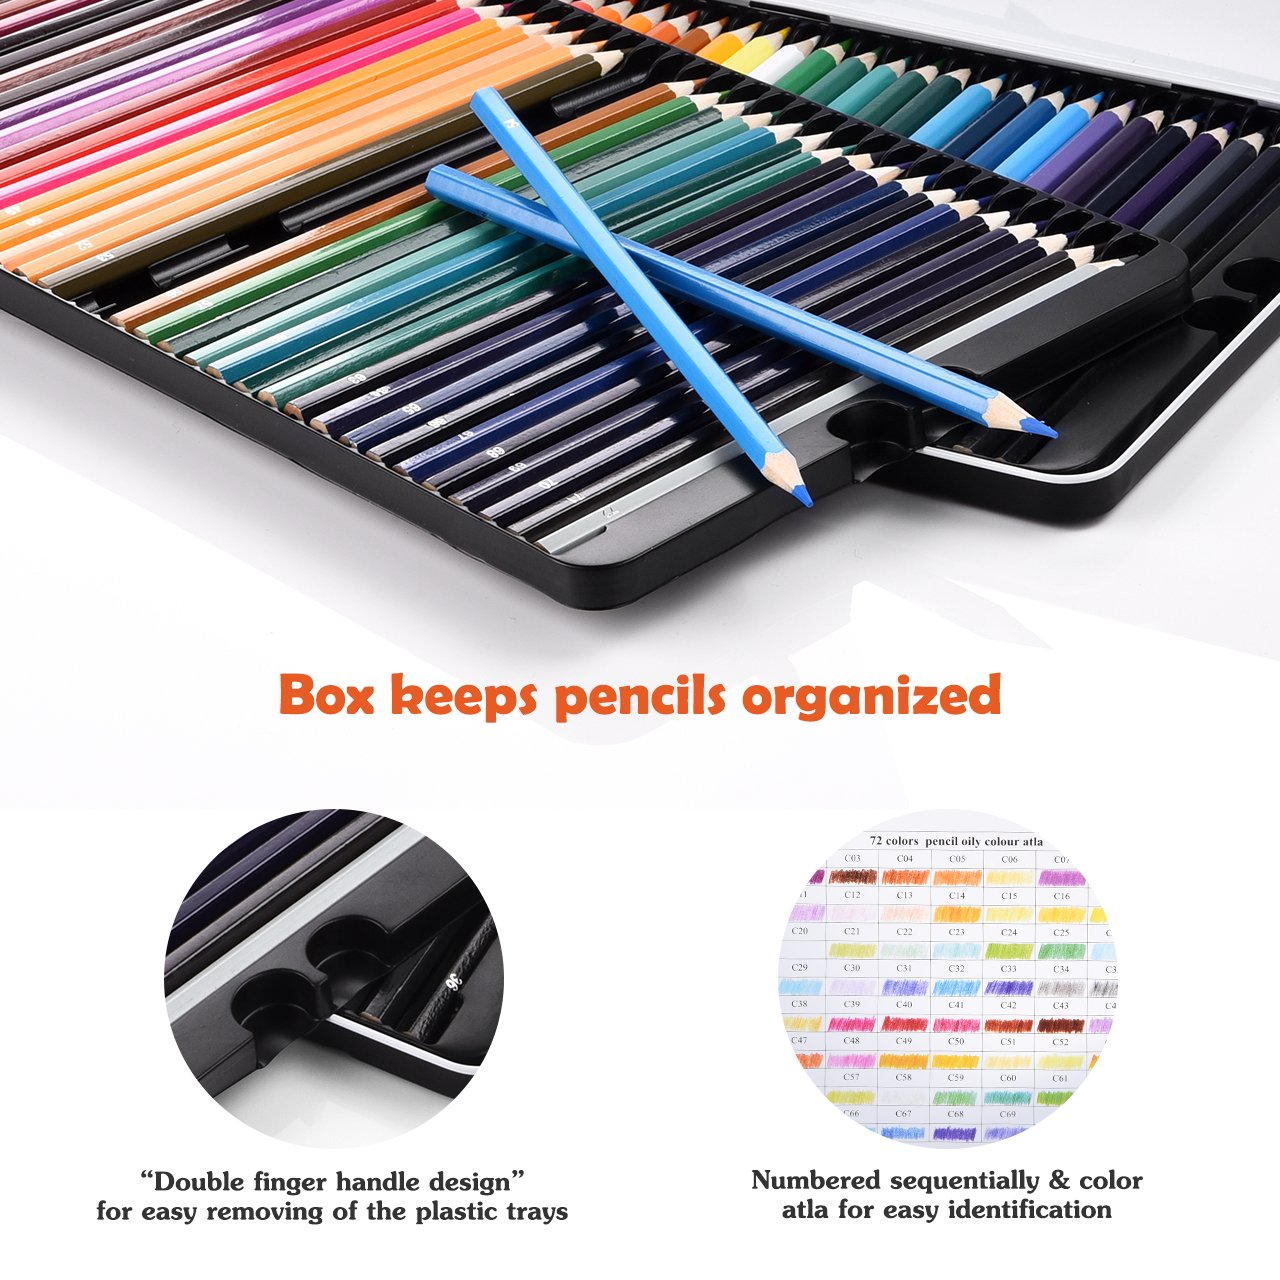 Colored Pencils, Atmoko Color Pencils Set with 72 Colored Pensils, Easy to Sharpen, [Hard to Break], Colored Pensils Bulk for Kids and Adults, Assorted Colors by ATMOKO (Image #3)